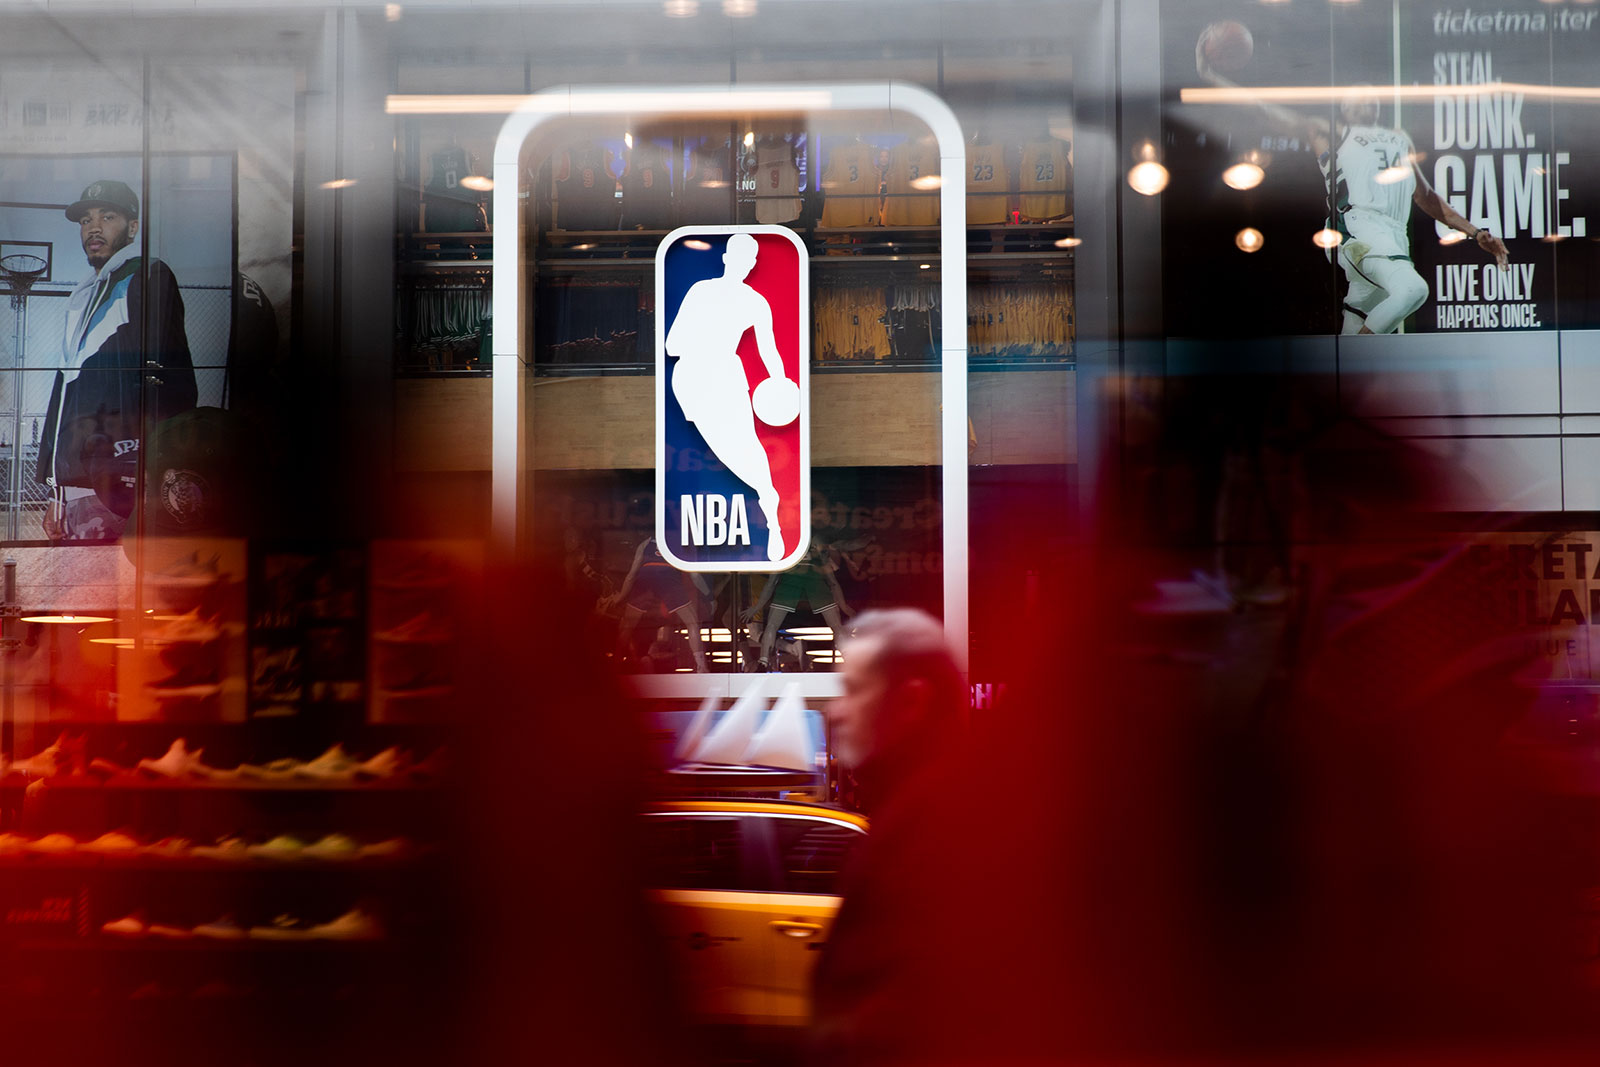 TheNBA's Board of Governors voted earlier this month to restart the suspended 2019-2020 season with 22 of the league's 30 teams taking part.